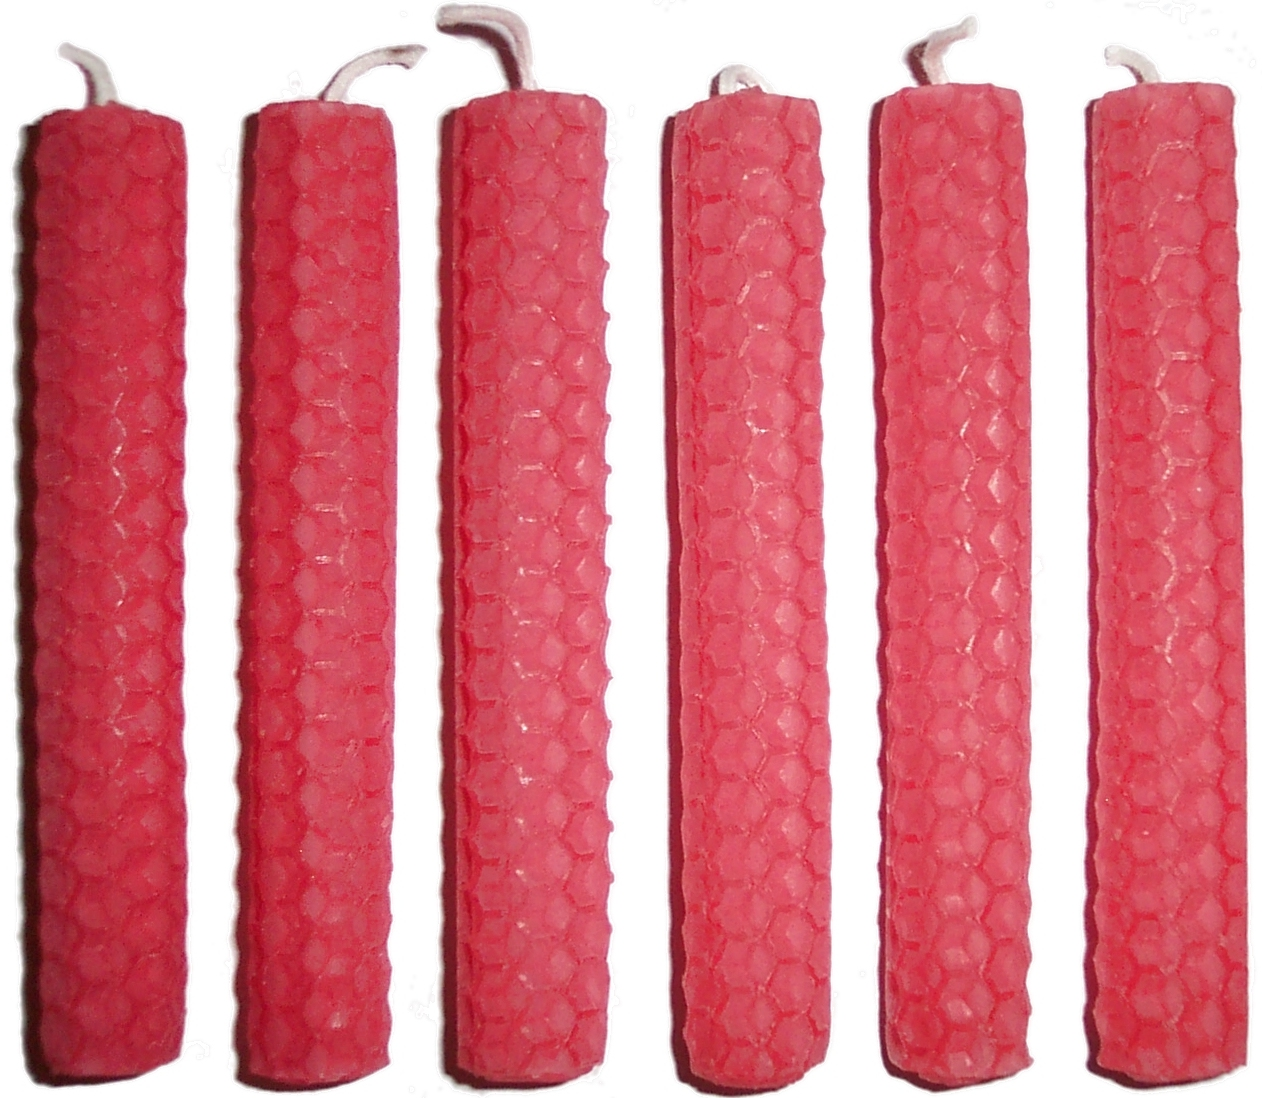 6 x 10cm PINK Beeswax Candles